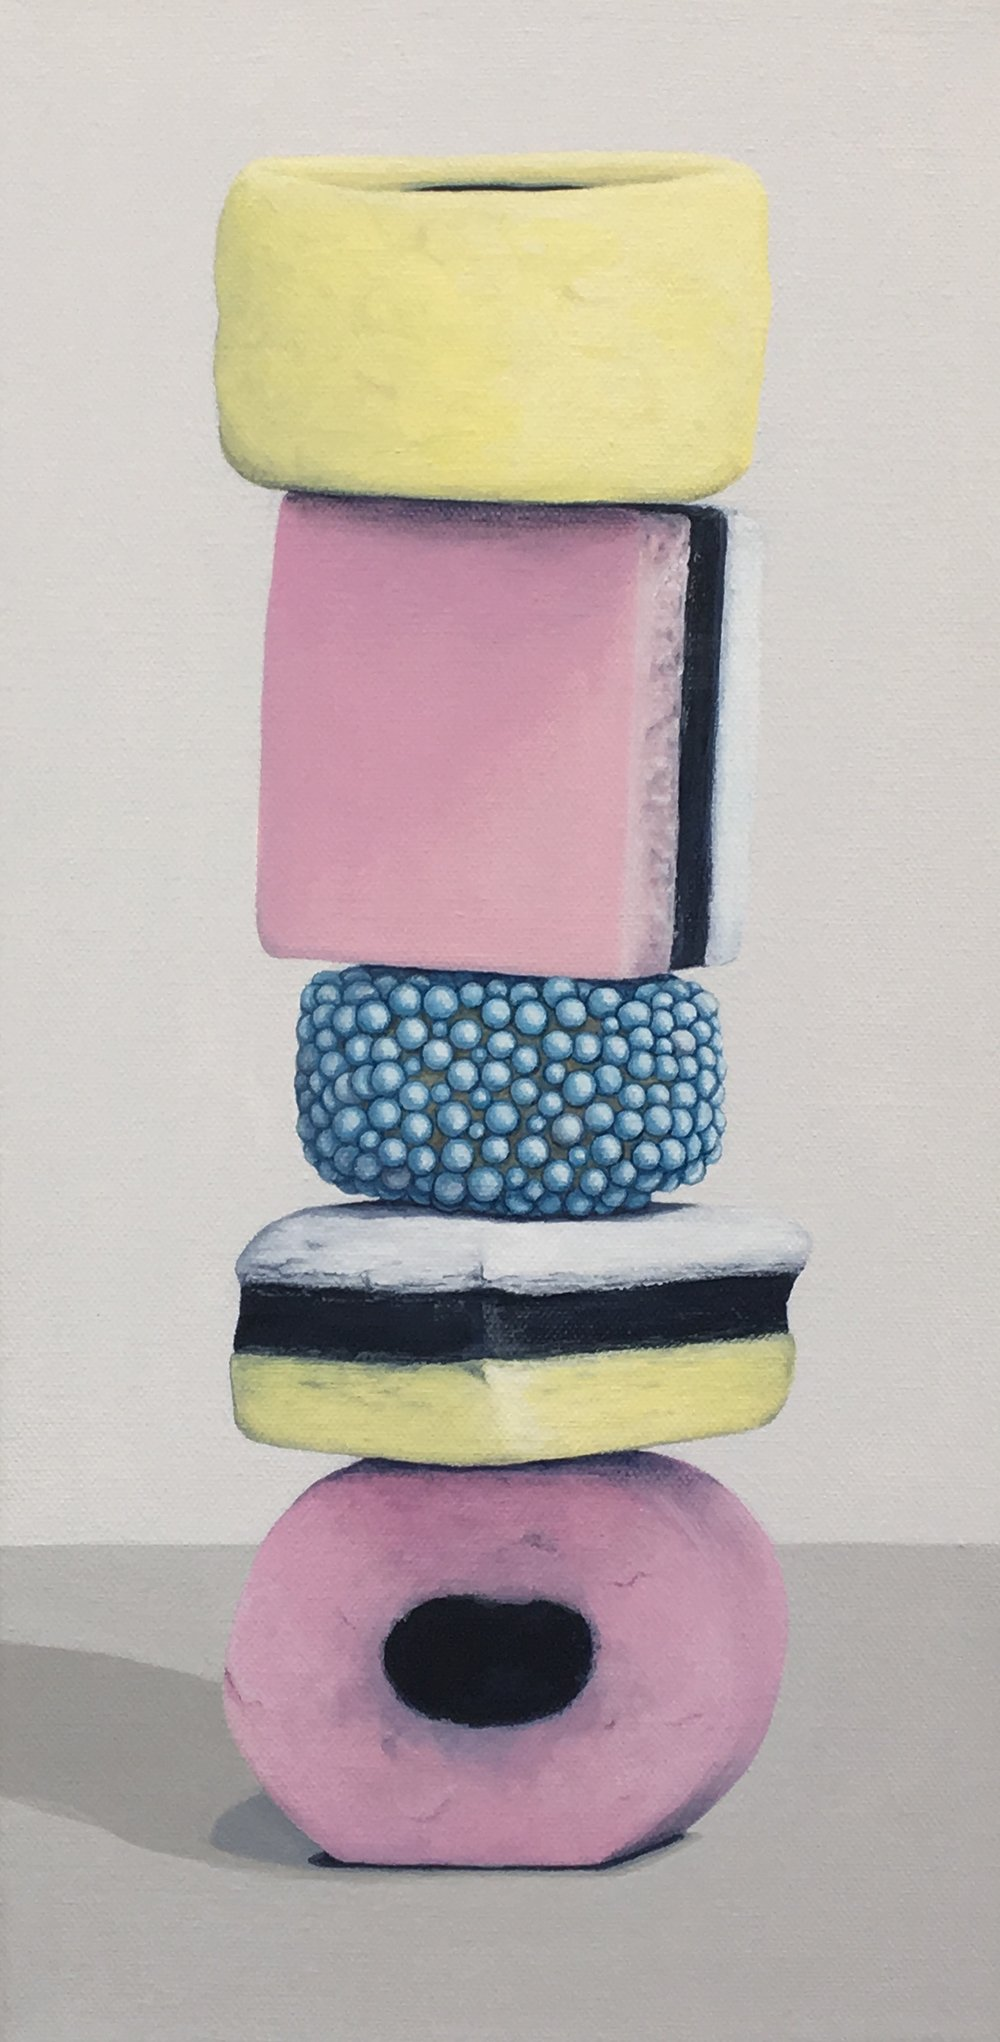 "Totem: Allsorts II   This enticing candy stacks is a delightful temptation. As a culture we are generally attracted to these charming colors and interesting shapes, but once the candy is experienced as a food there is often a mismatch between its attractiveness and its taste. This work explores the occurrence of the incongruity of appearance and experience.  8"" x 16"" gallery wrapped canvas  $400.00"